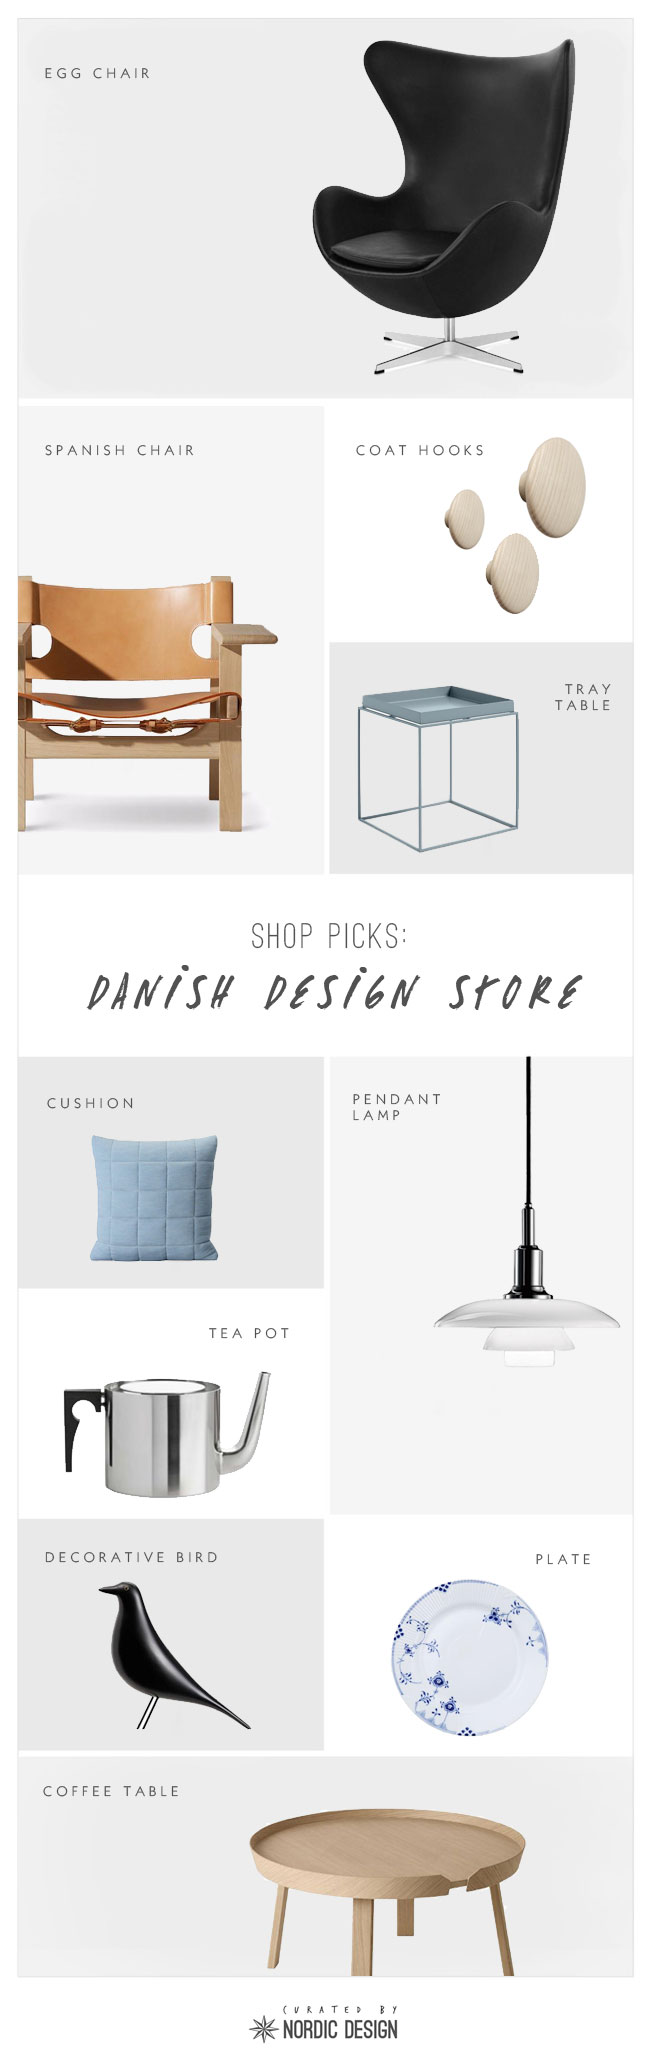 My-Shop-picks-DANISH-DESIGN-STORE